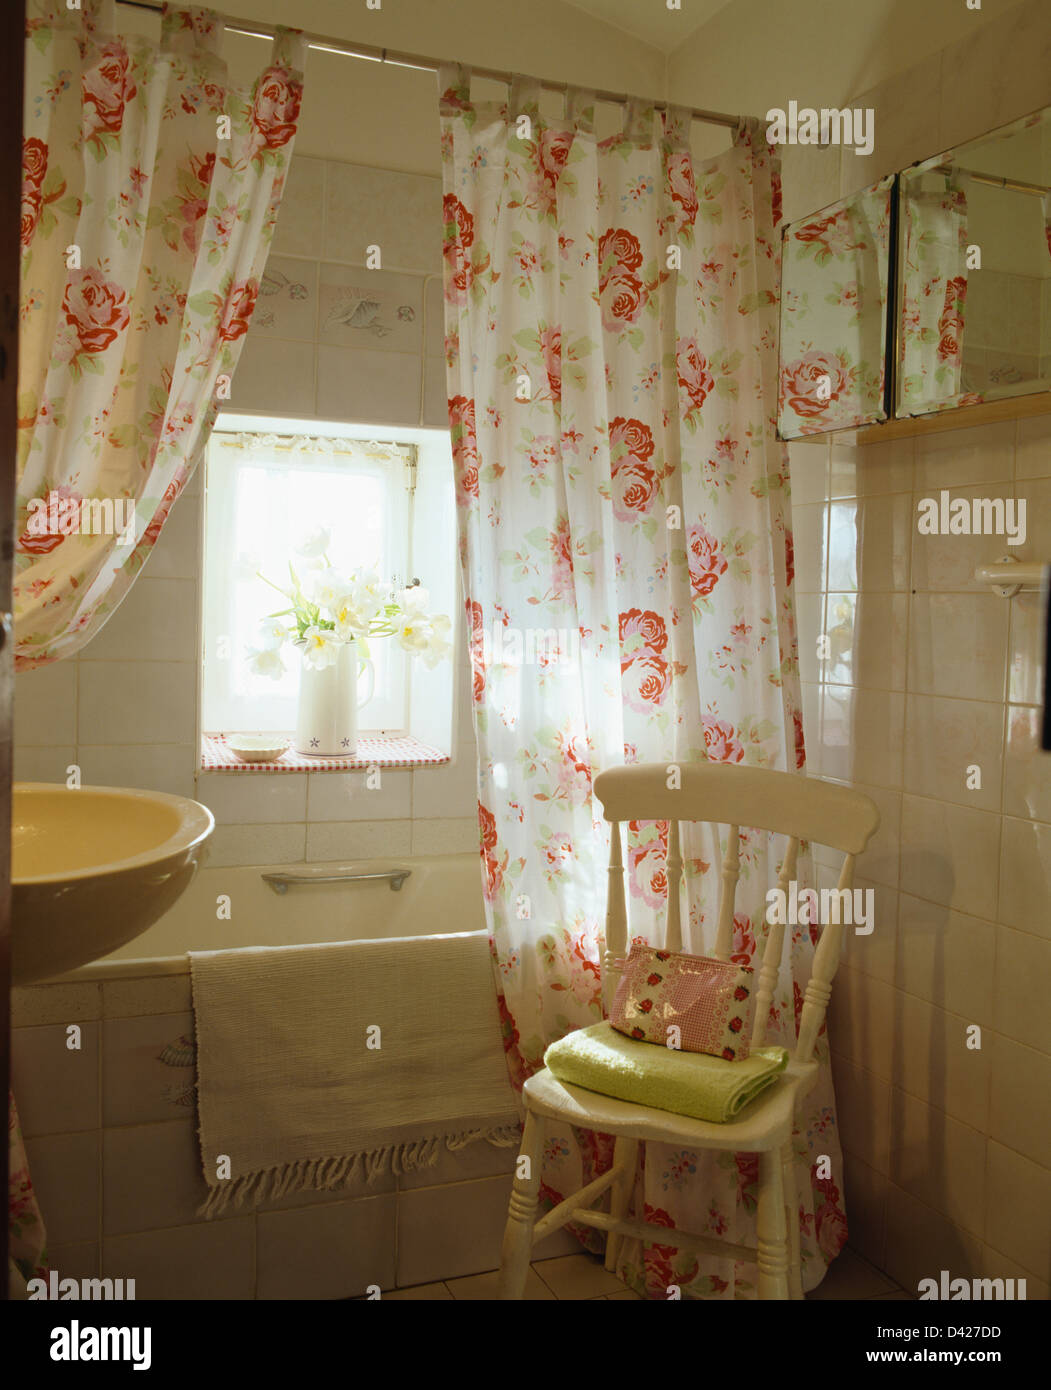 Country bathroom shower curtains - Rose Printed Shower Curtains On Bath In Country Bathroom With Painted Cream Chair